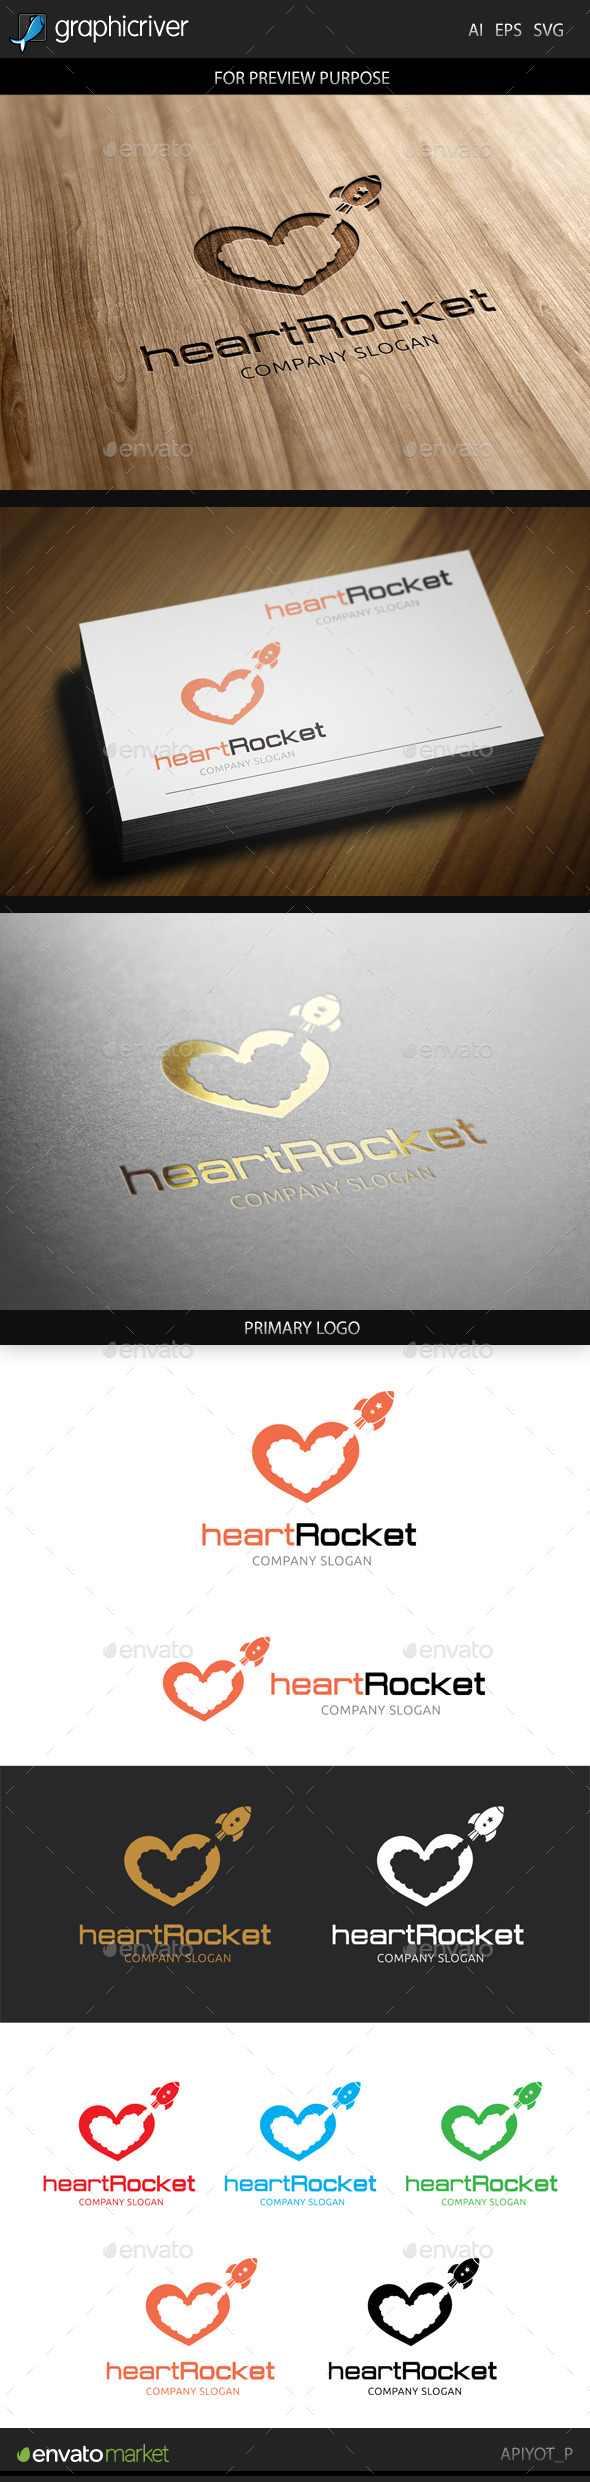 GraphicRiver Heart Rocket Logo 8881704